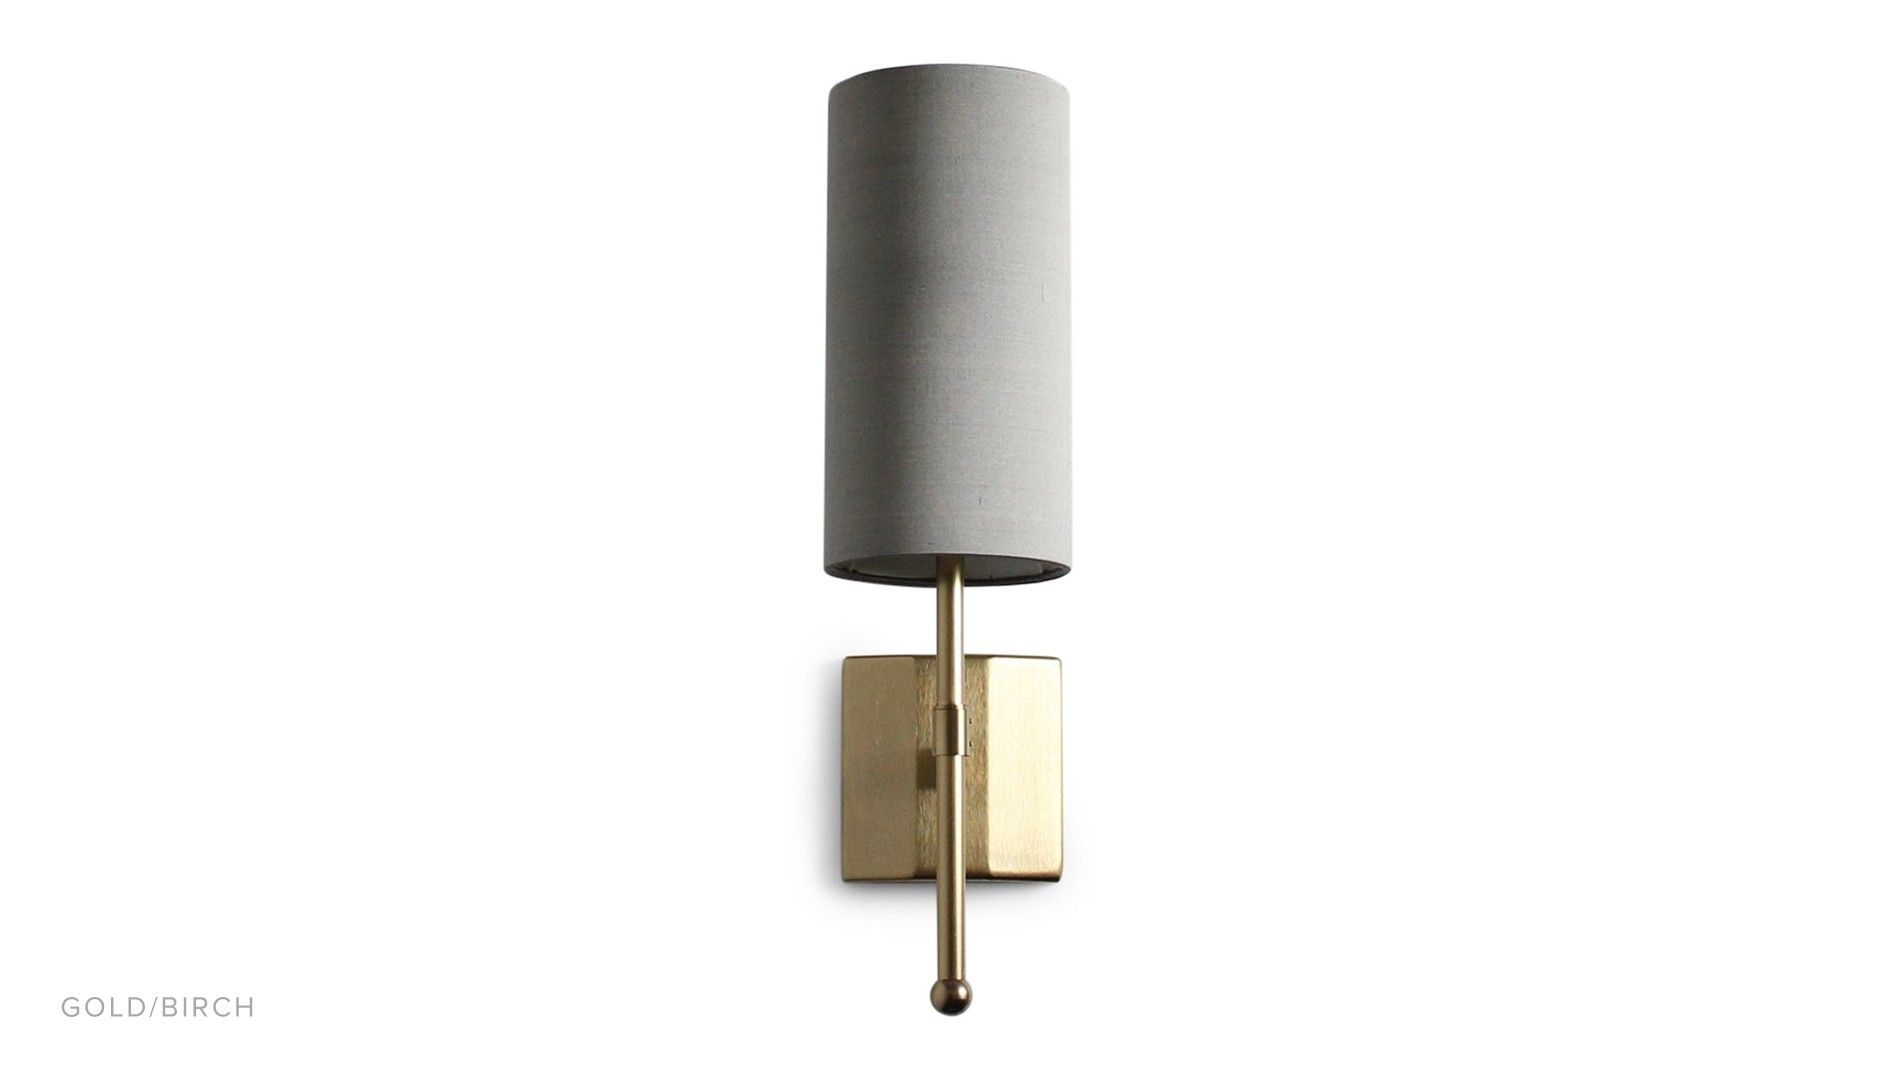 Tigermoth Lighting Single Stem Wall Light At Luxdeco